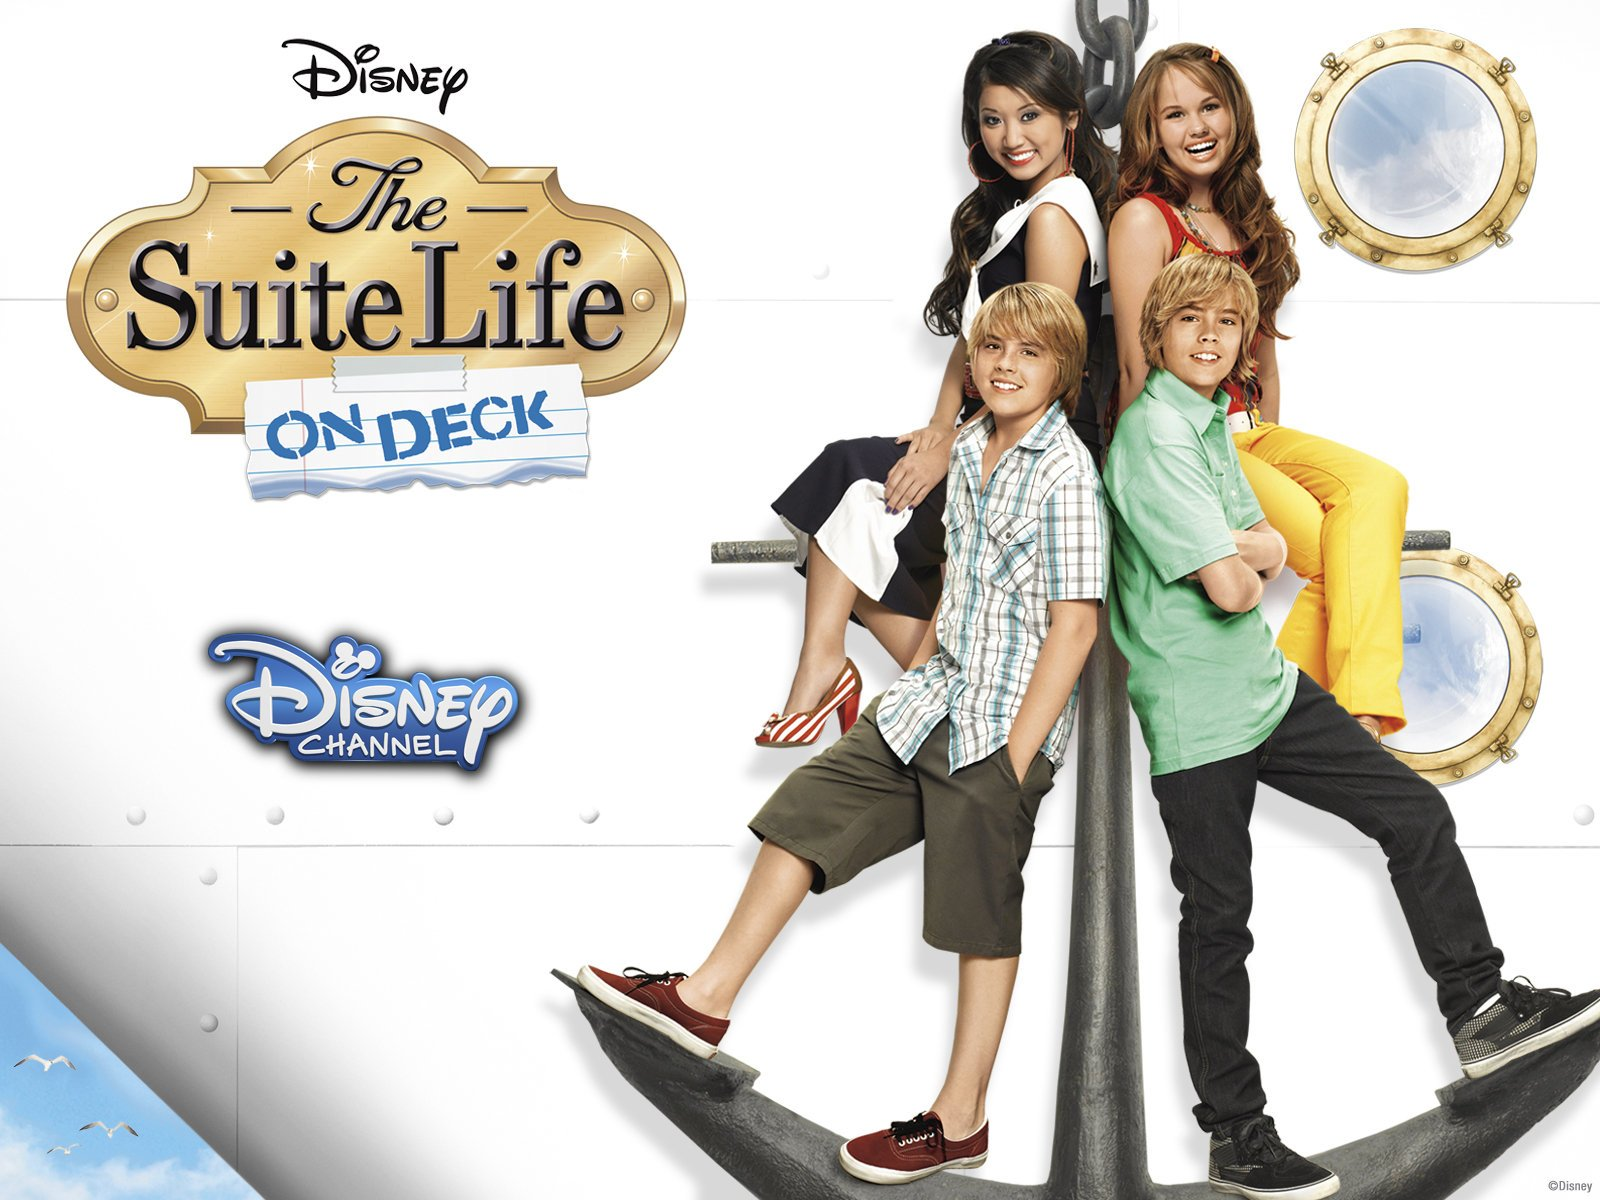 Watch The Suite Life On Deck Volume 1